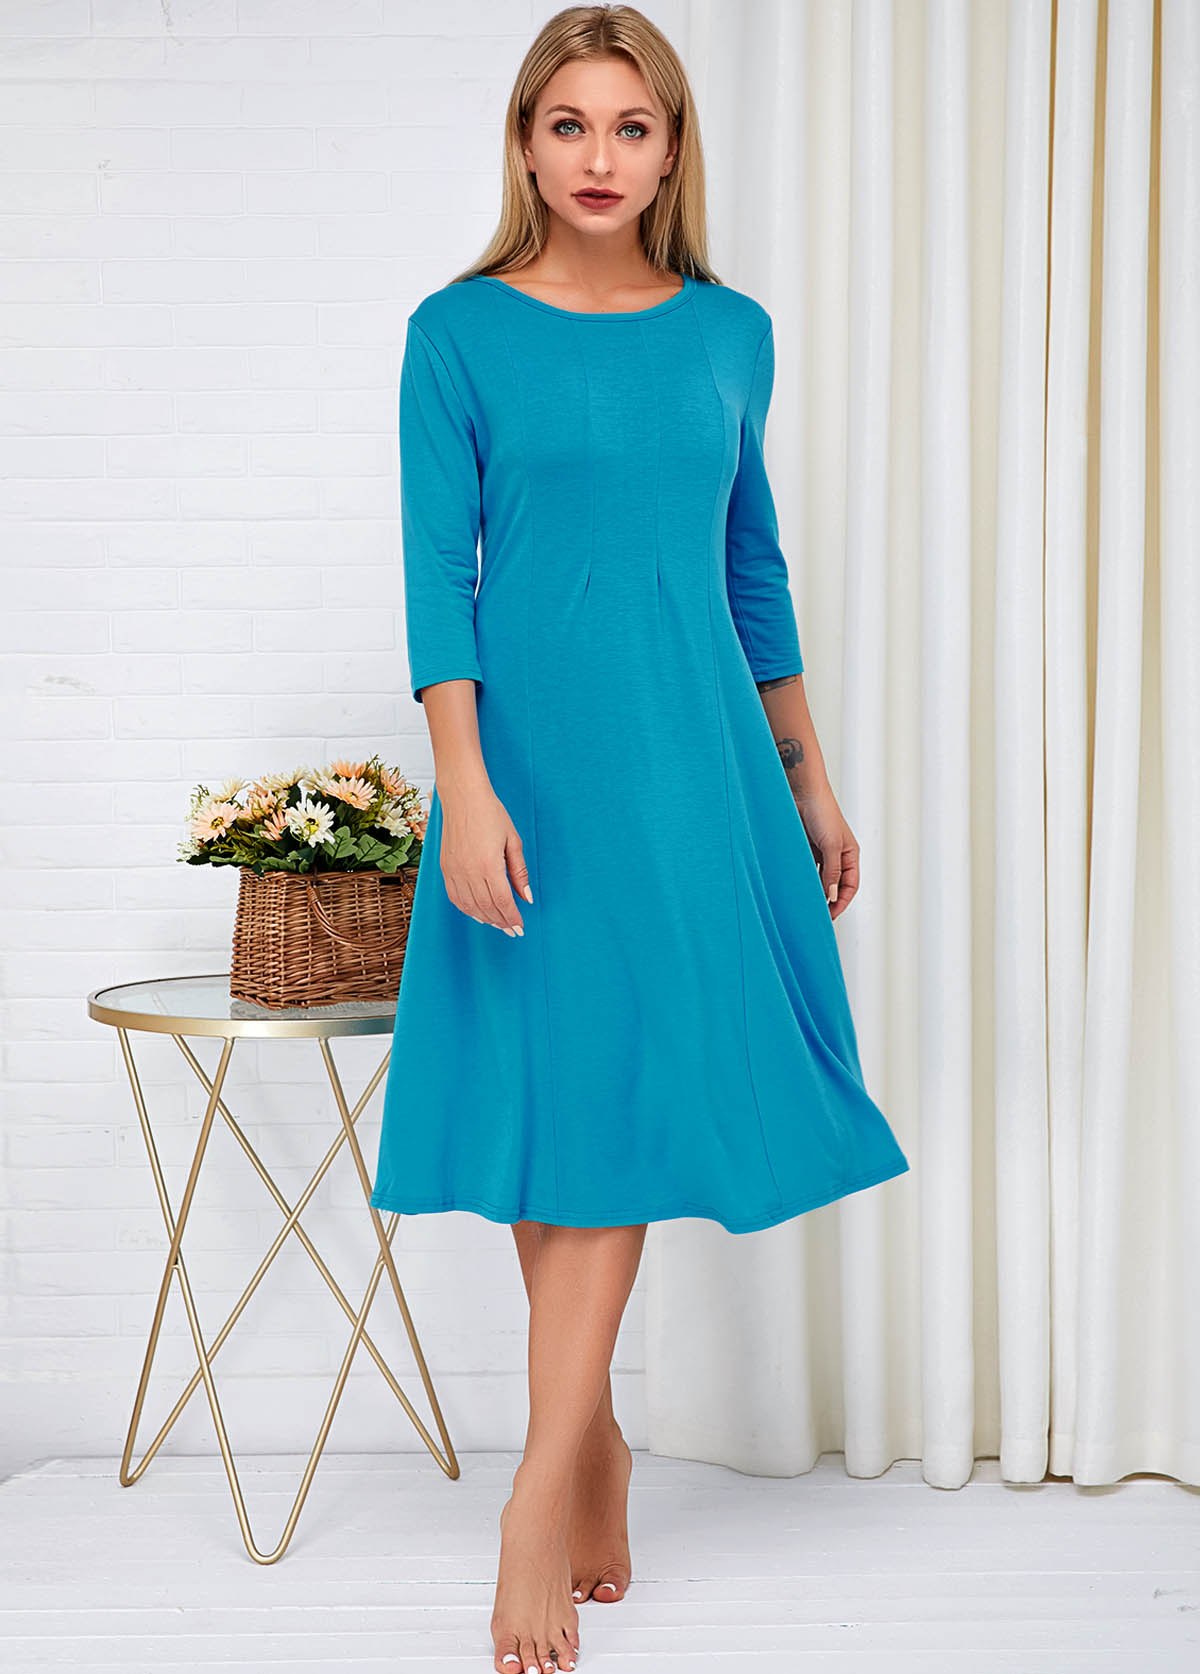 Round Neck Three Quarter Sleeve Blue Dress